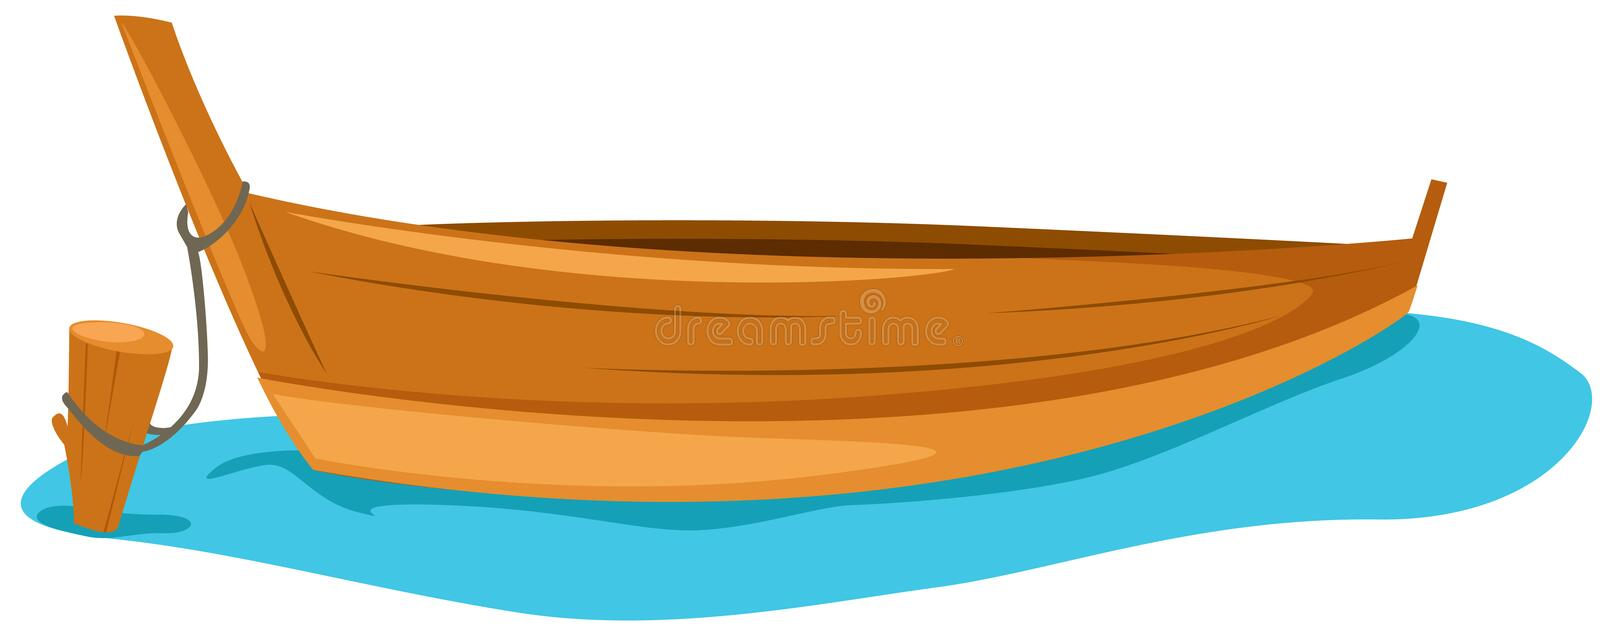 Houten boot vector illustratie